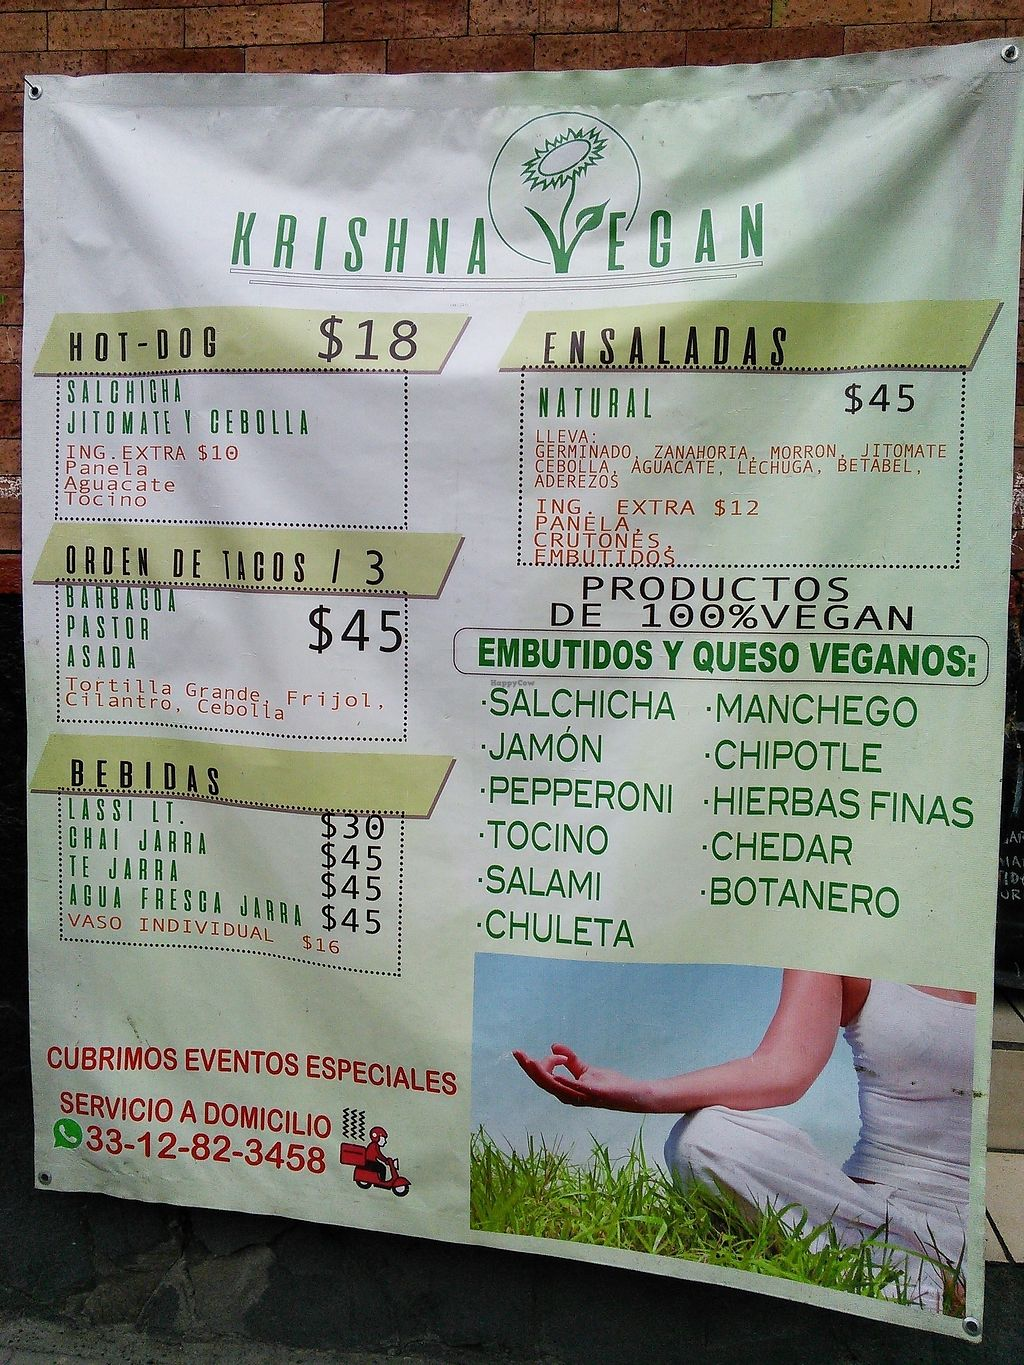 """Photo of Krishna Vegan  by <a href=""""/members/profile/Vcup"""">Vcup</a> <br/>Menu sign <br/> February 9, 2018  - <a href='/contact/abuse/image/111623/356959'>Report</a>"""